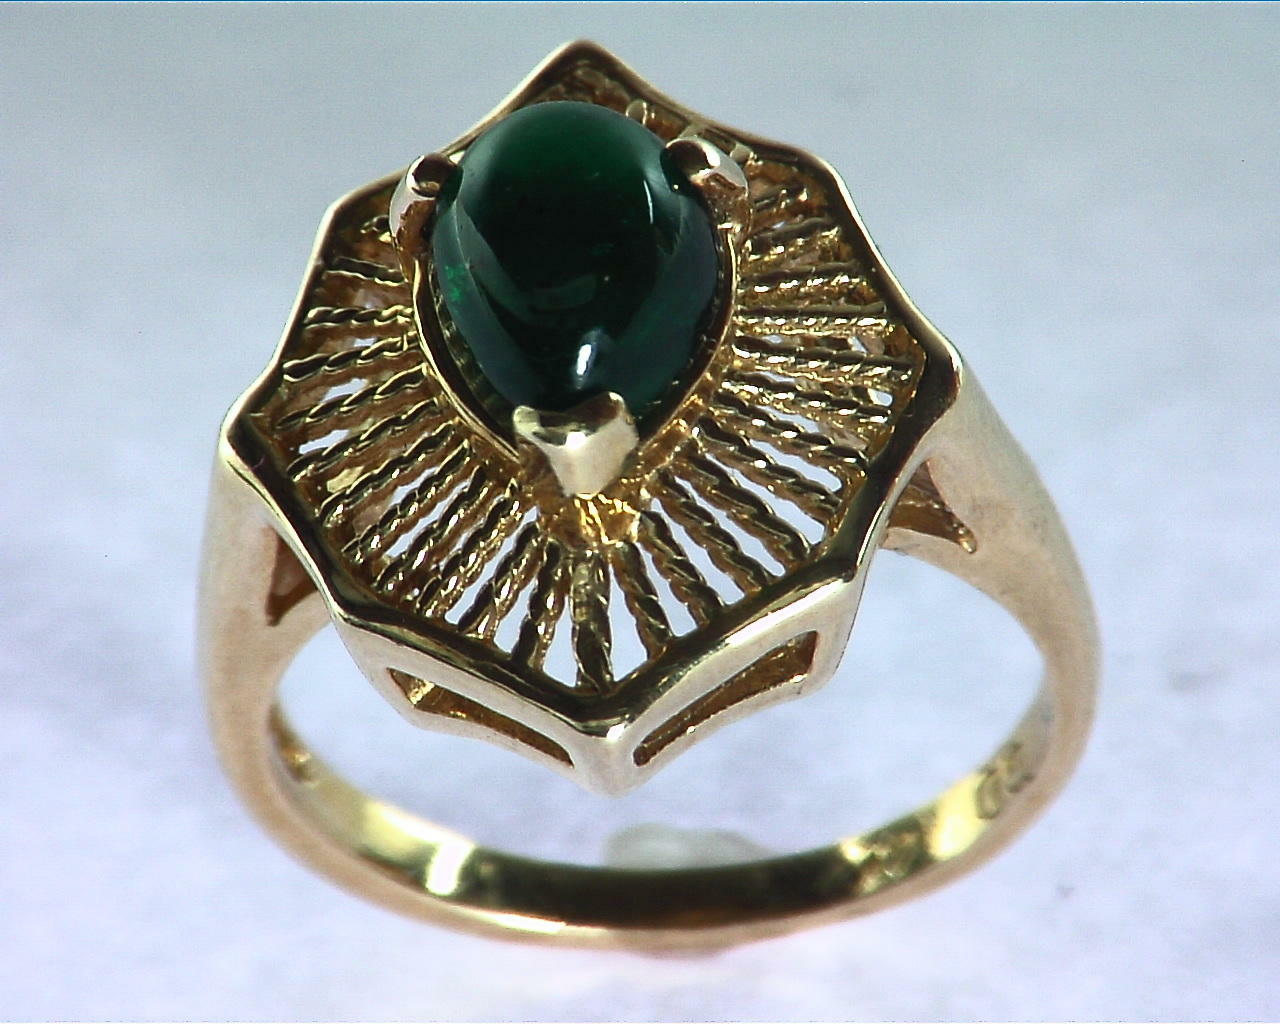 Emerald Engagement Ring in 14 kt Yellow Gold in a Beautiful Design RFK126 5